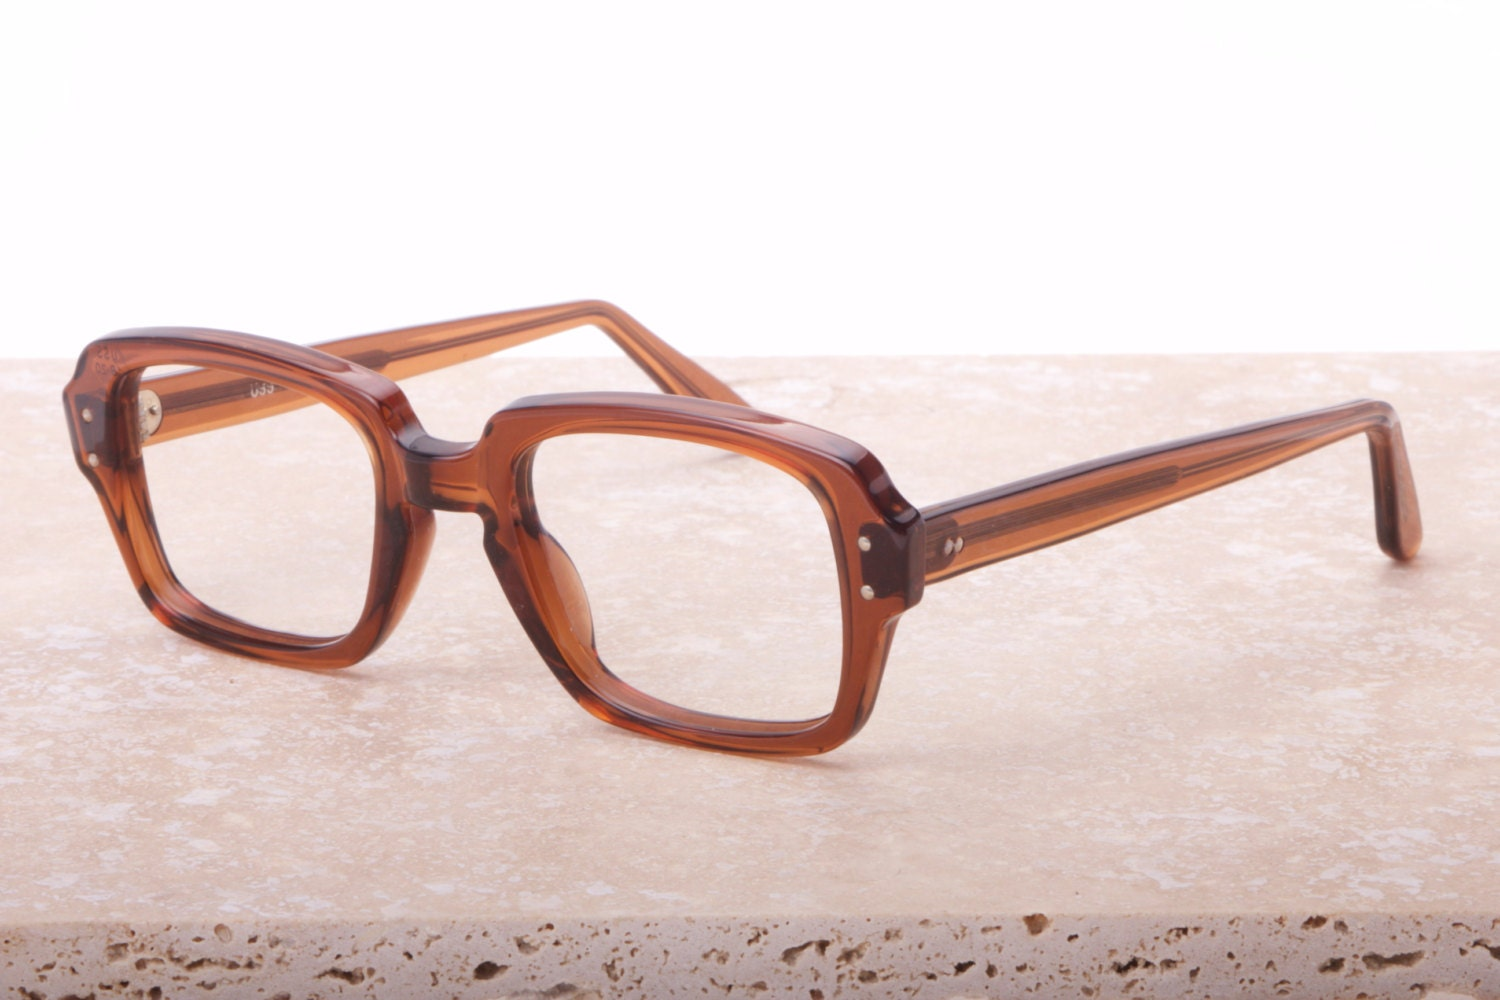 Eyeglass Frames For Military : Unavailable Listing on Etsy